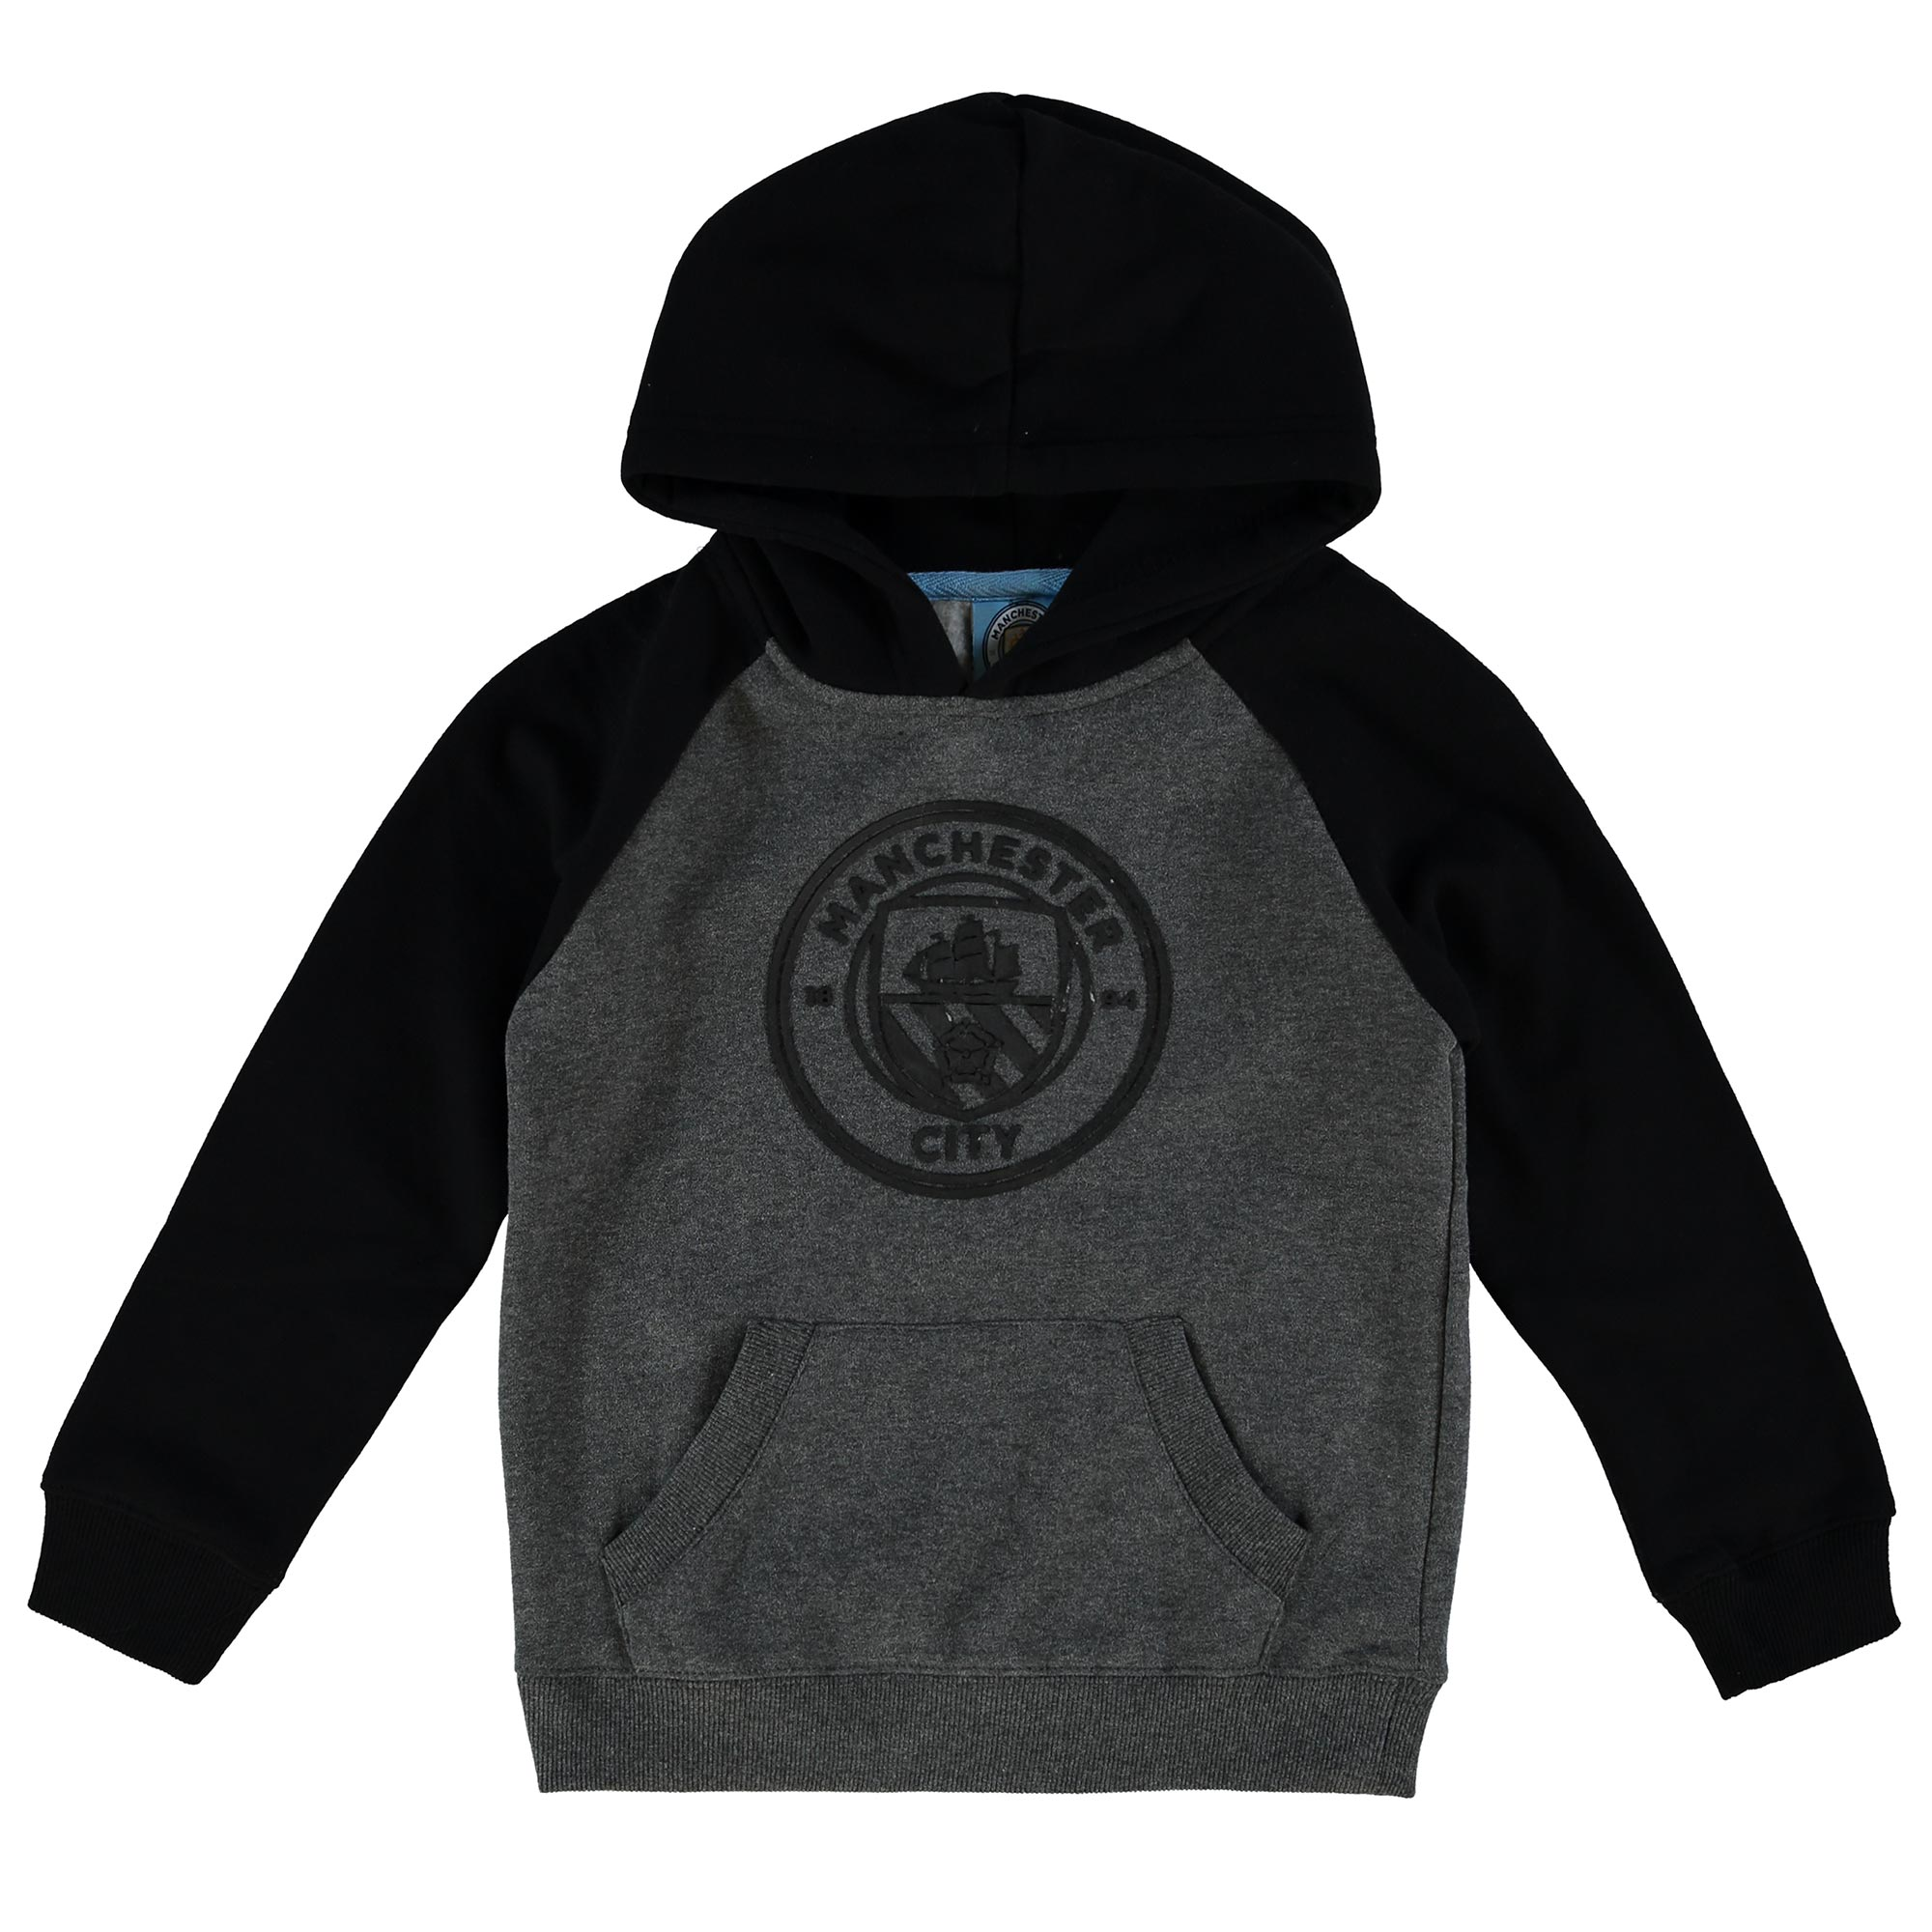 Manchester City Classic OTH Raglan Hoodie - Grey/Black - Junior